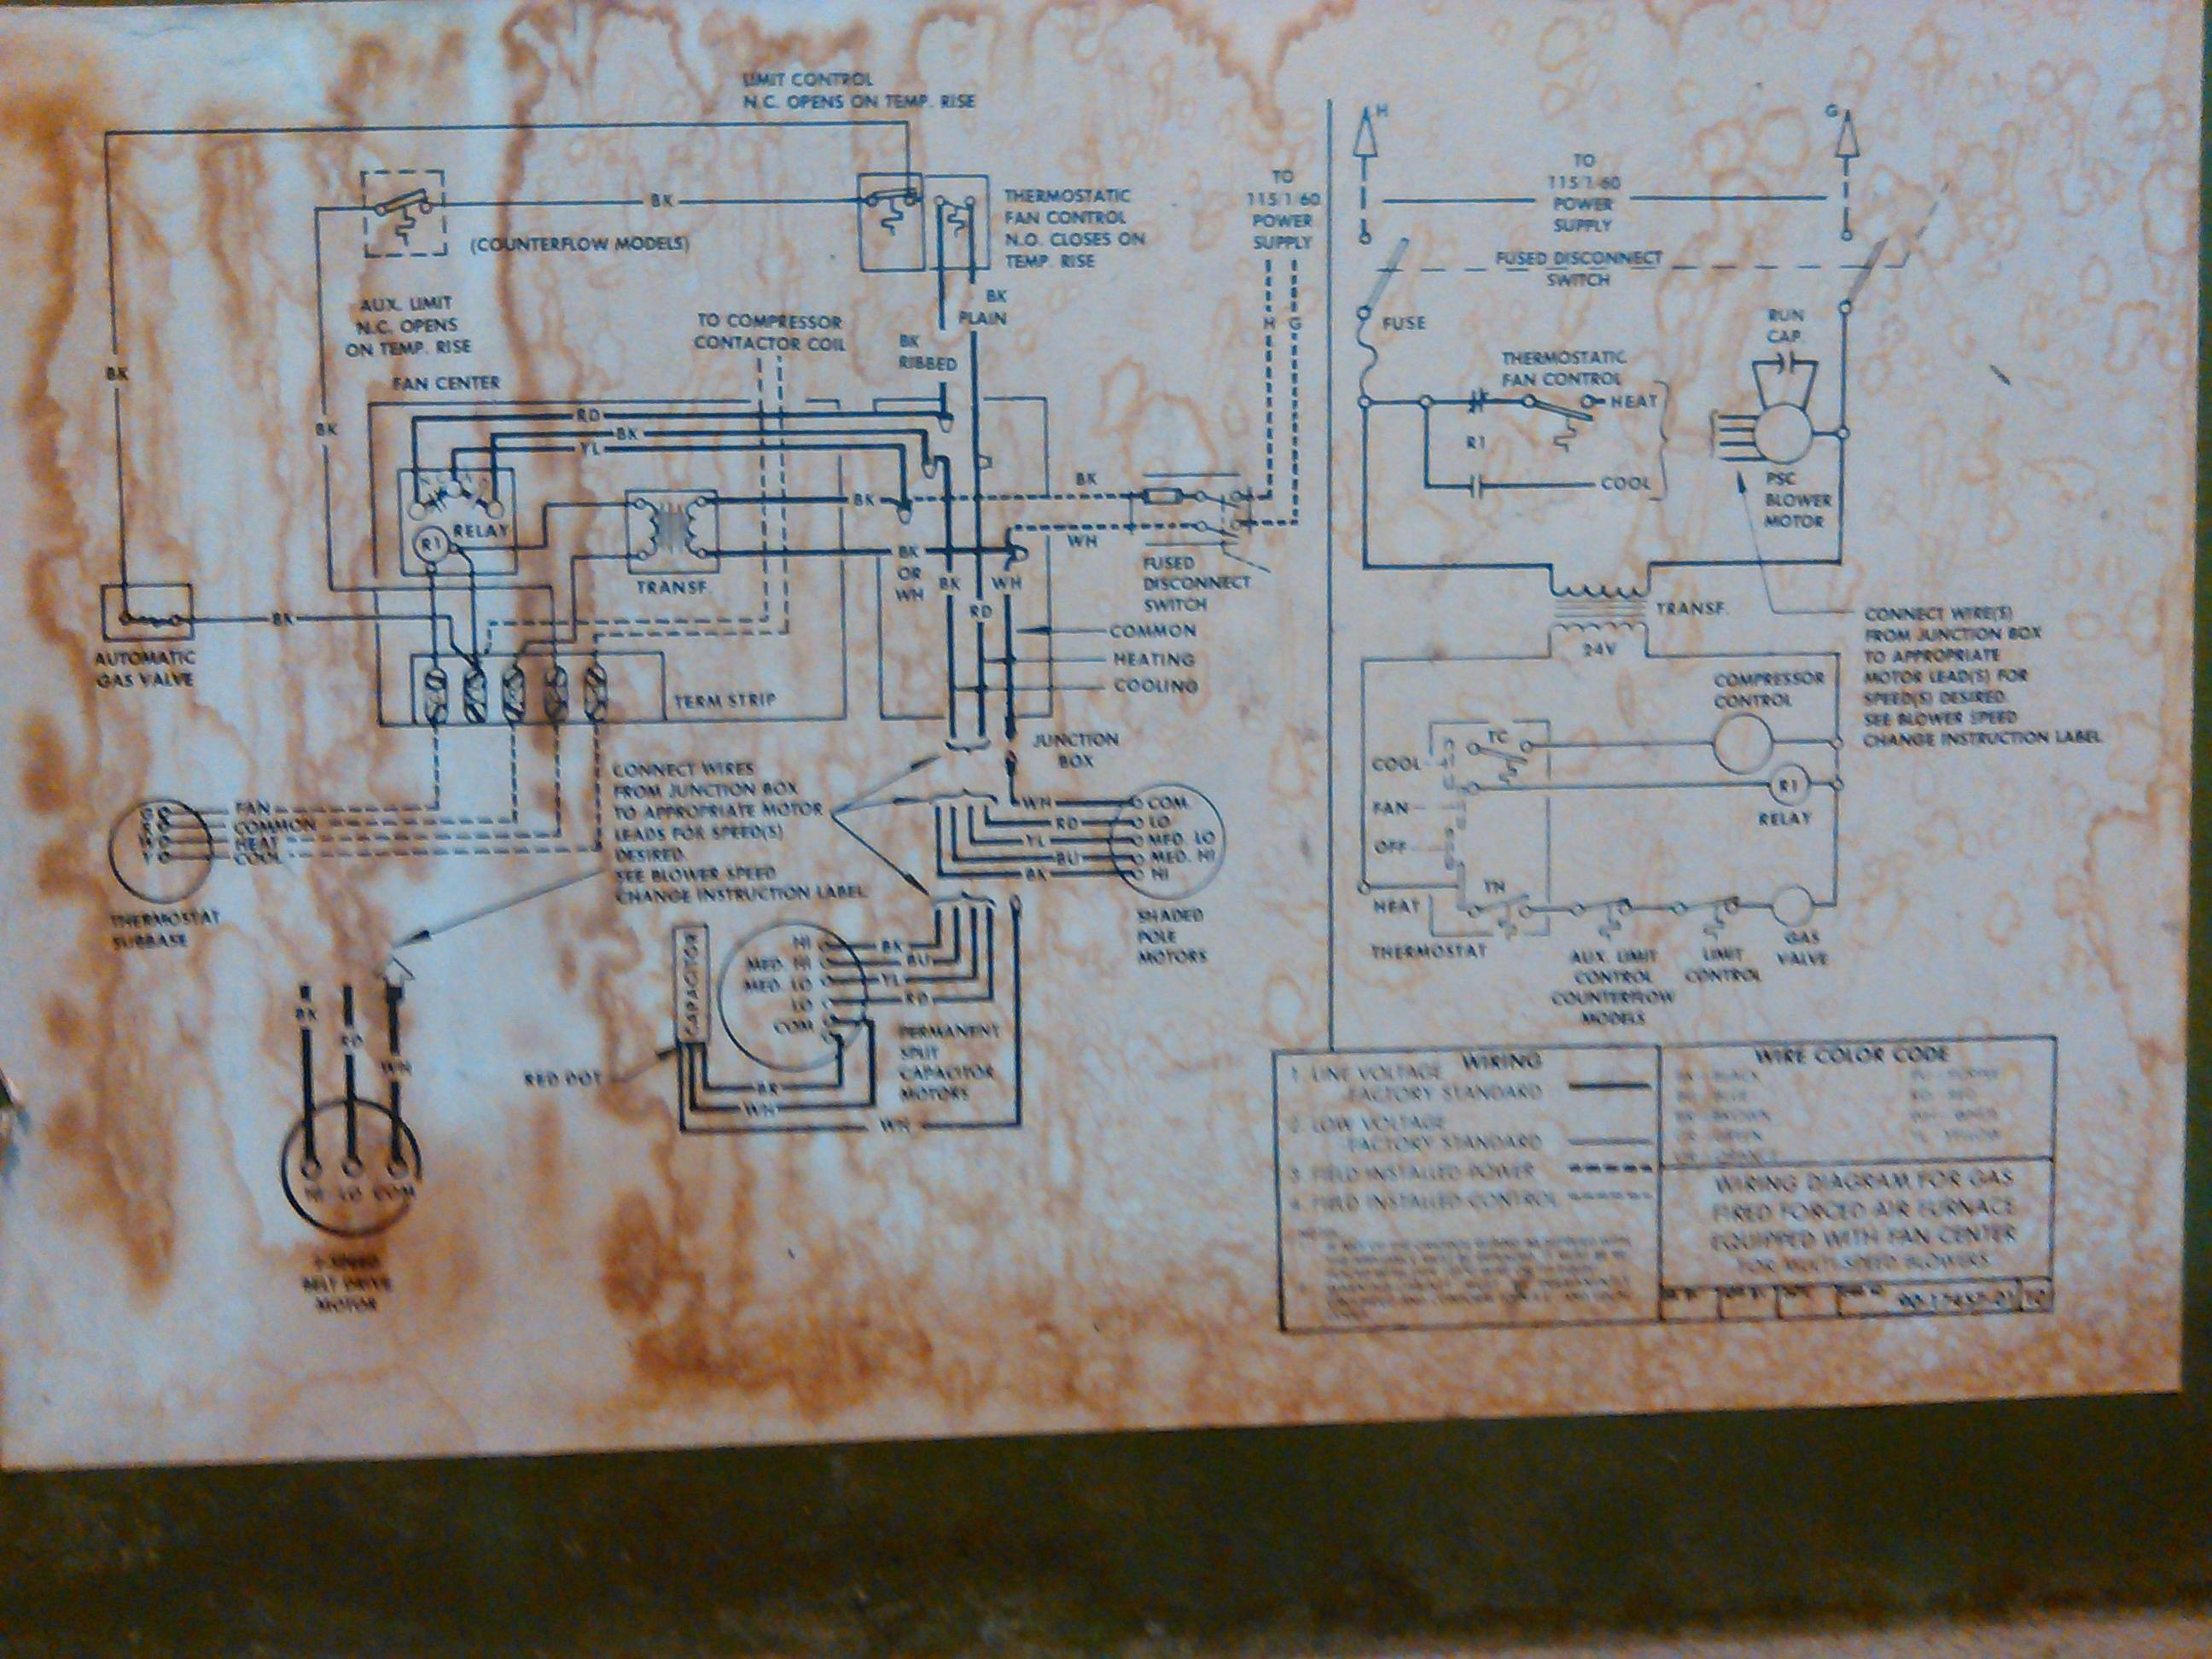 Hvac - Replace Old Furnace Blower Motor With A New One But The Wires - Furnace Blower Motor Wiring Diagram